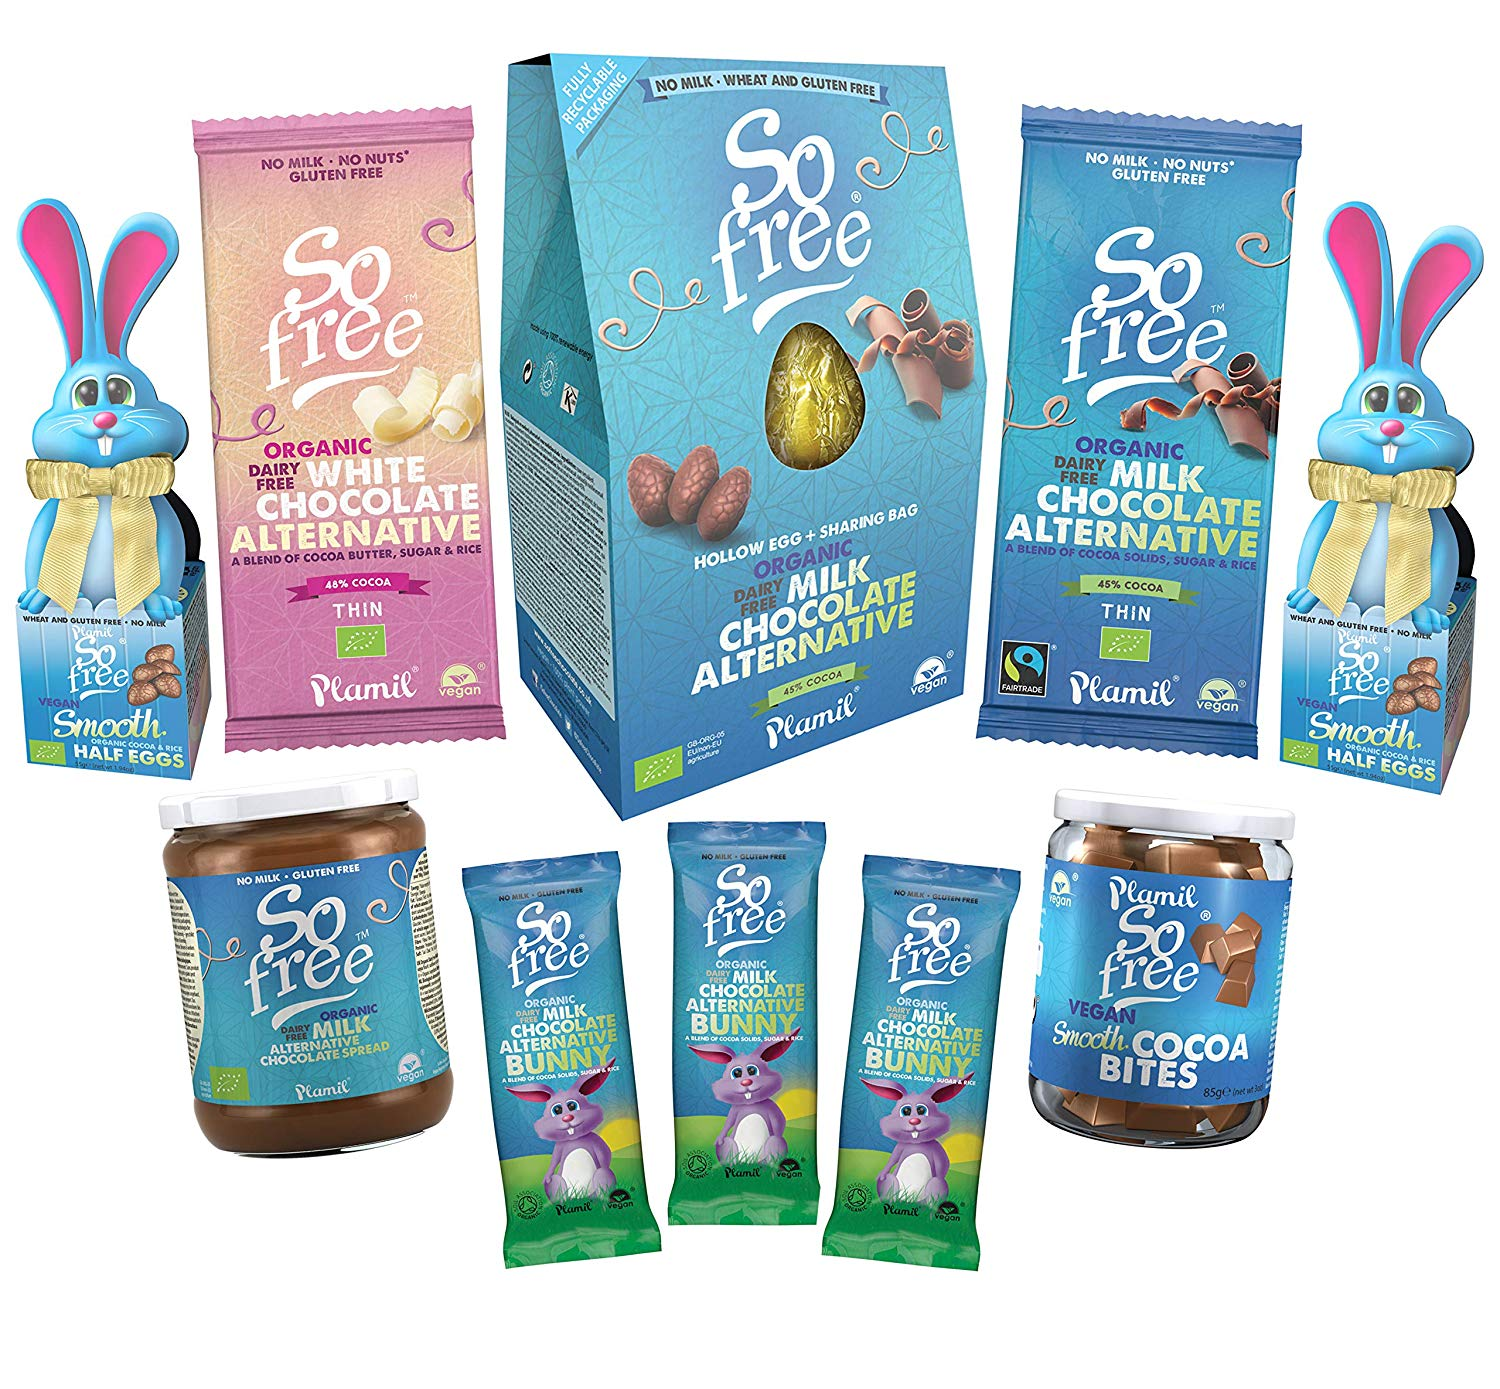 Vegan chocolate Easter bunnies, bars and chocolate spread